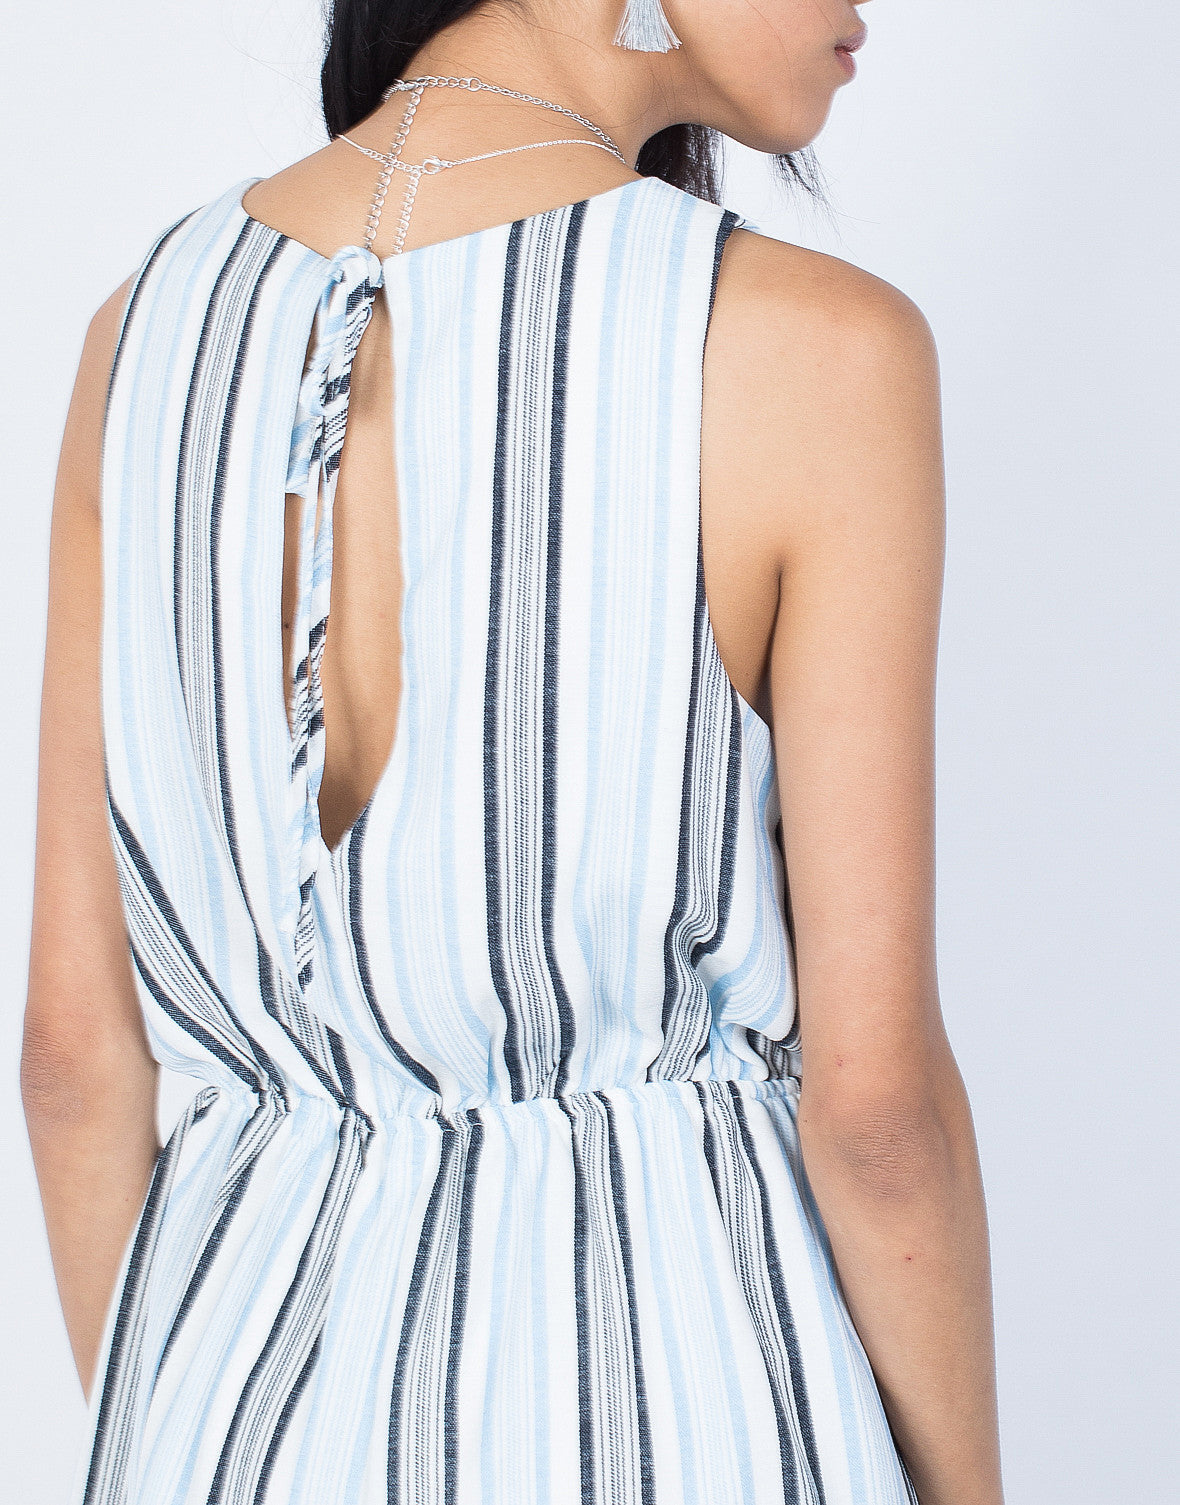 Light Blue Ocean Breeze Romper - Detail View